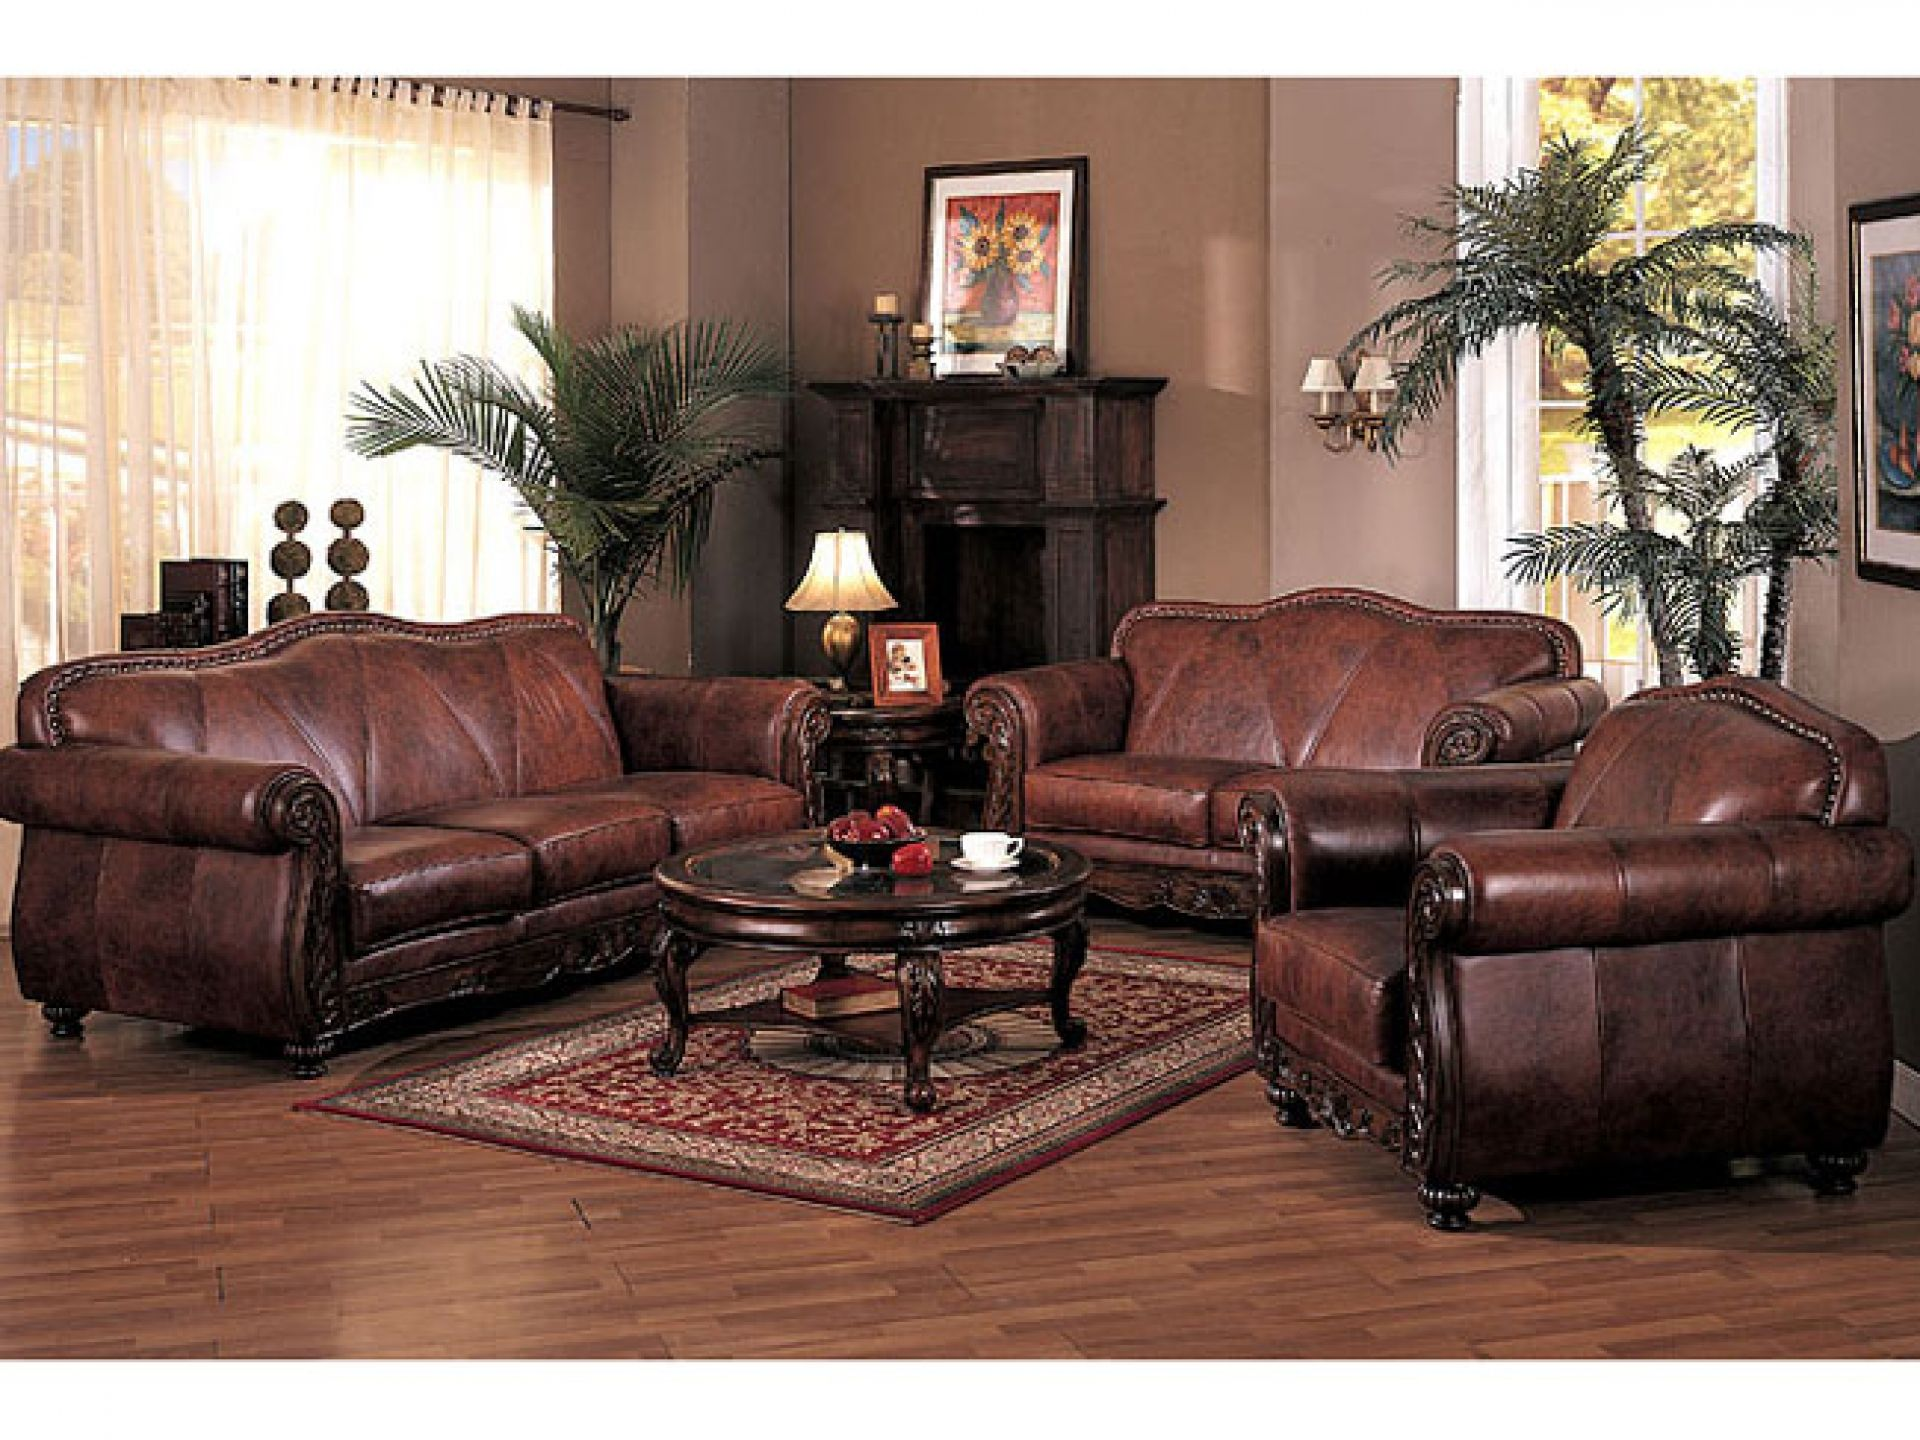 The North Shore   Dark Brown Sofa From Ashley Furniture HomeStore  (AFHS.com). All Leather Upholstery In North Shore Leather, Featuring The  Luxuriouu2026